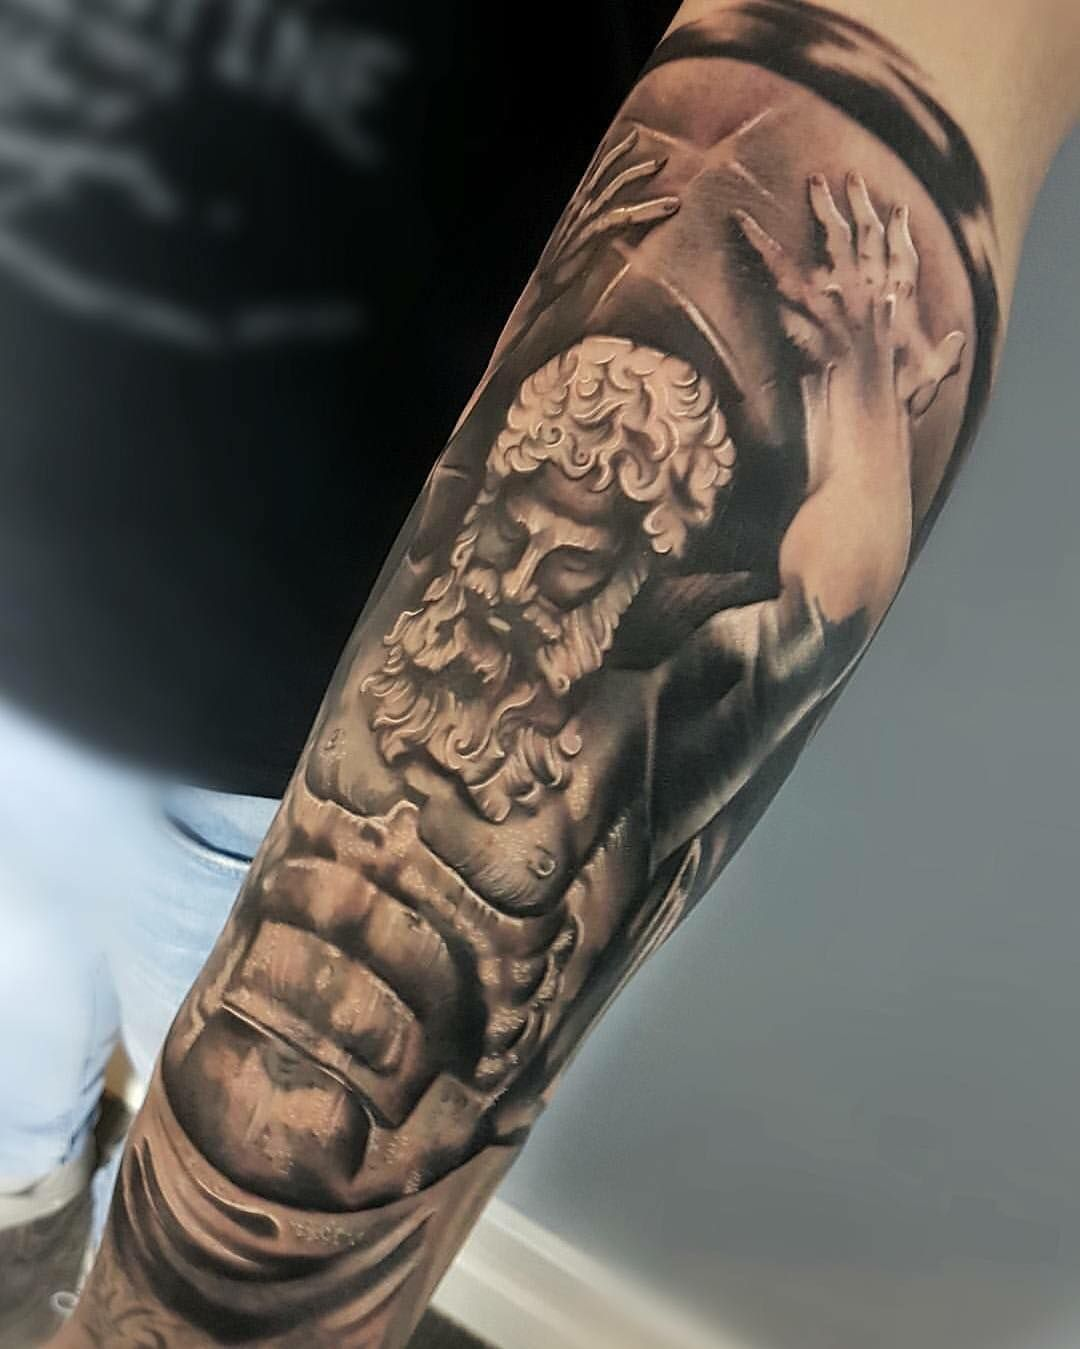 80 Creative Forearm Tattoo Ideas For Men and Women Check